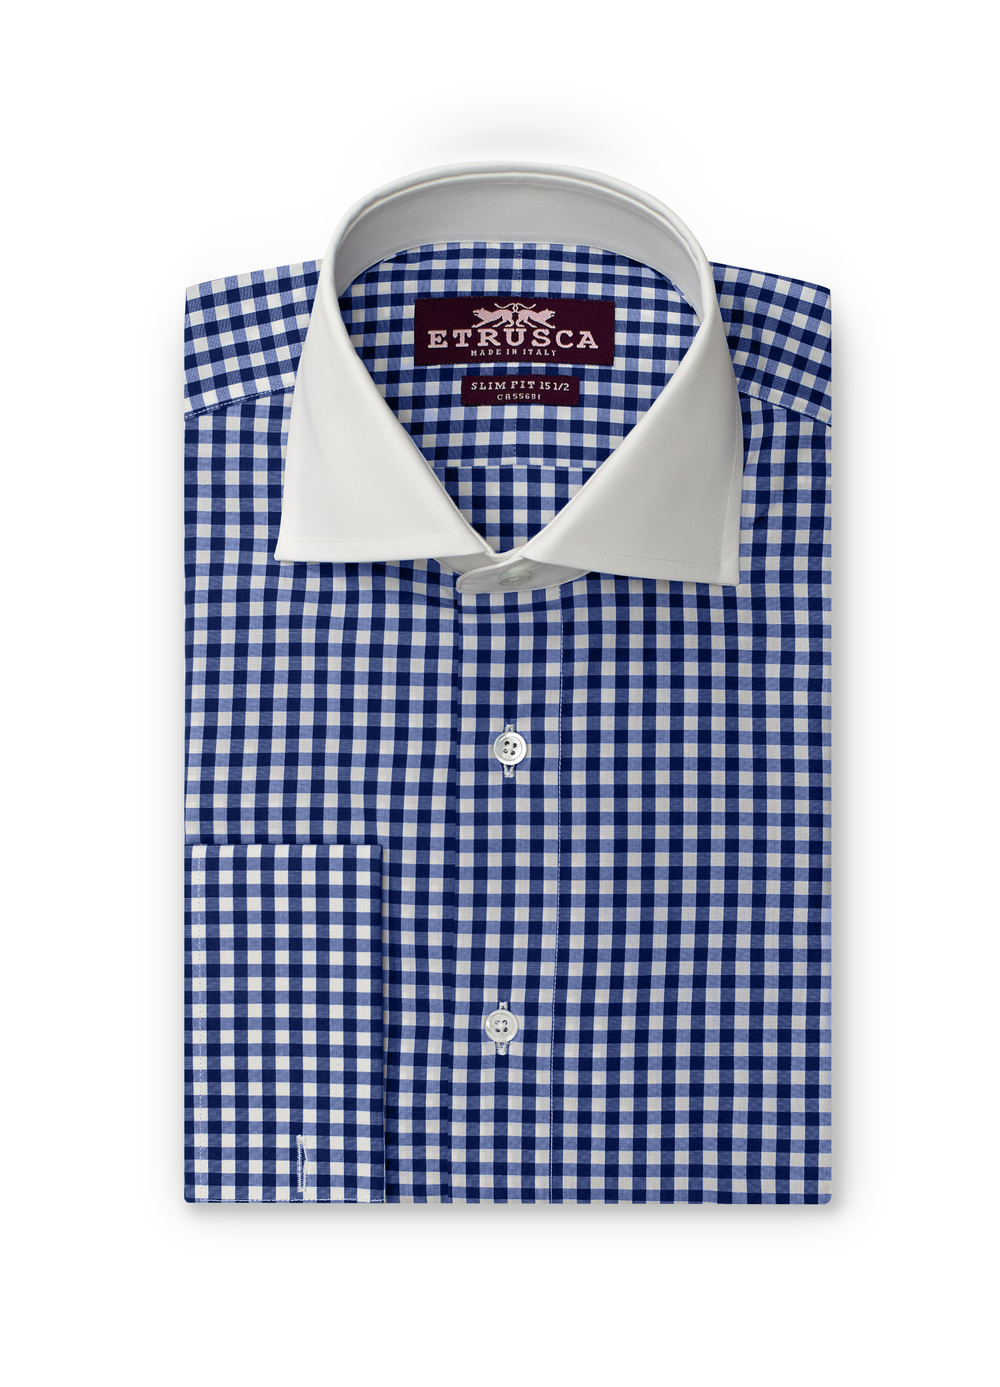 ETRUSCA-Collezione-Tre-Esecutivo-Ink-Gingham-White-Collar-Folded-001-HR.jpg